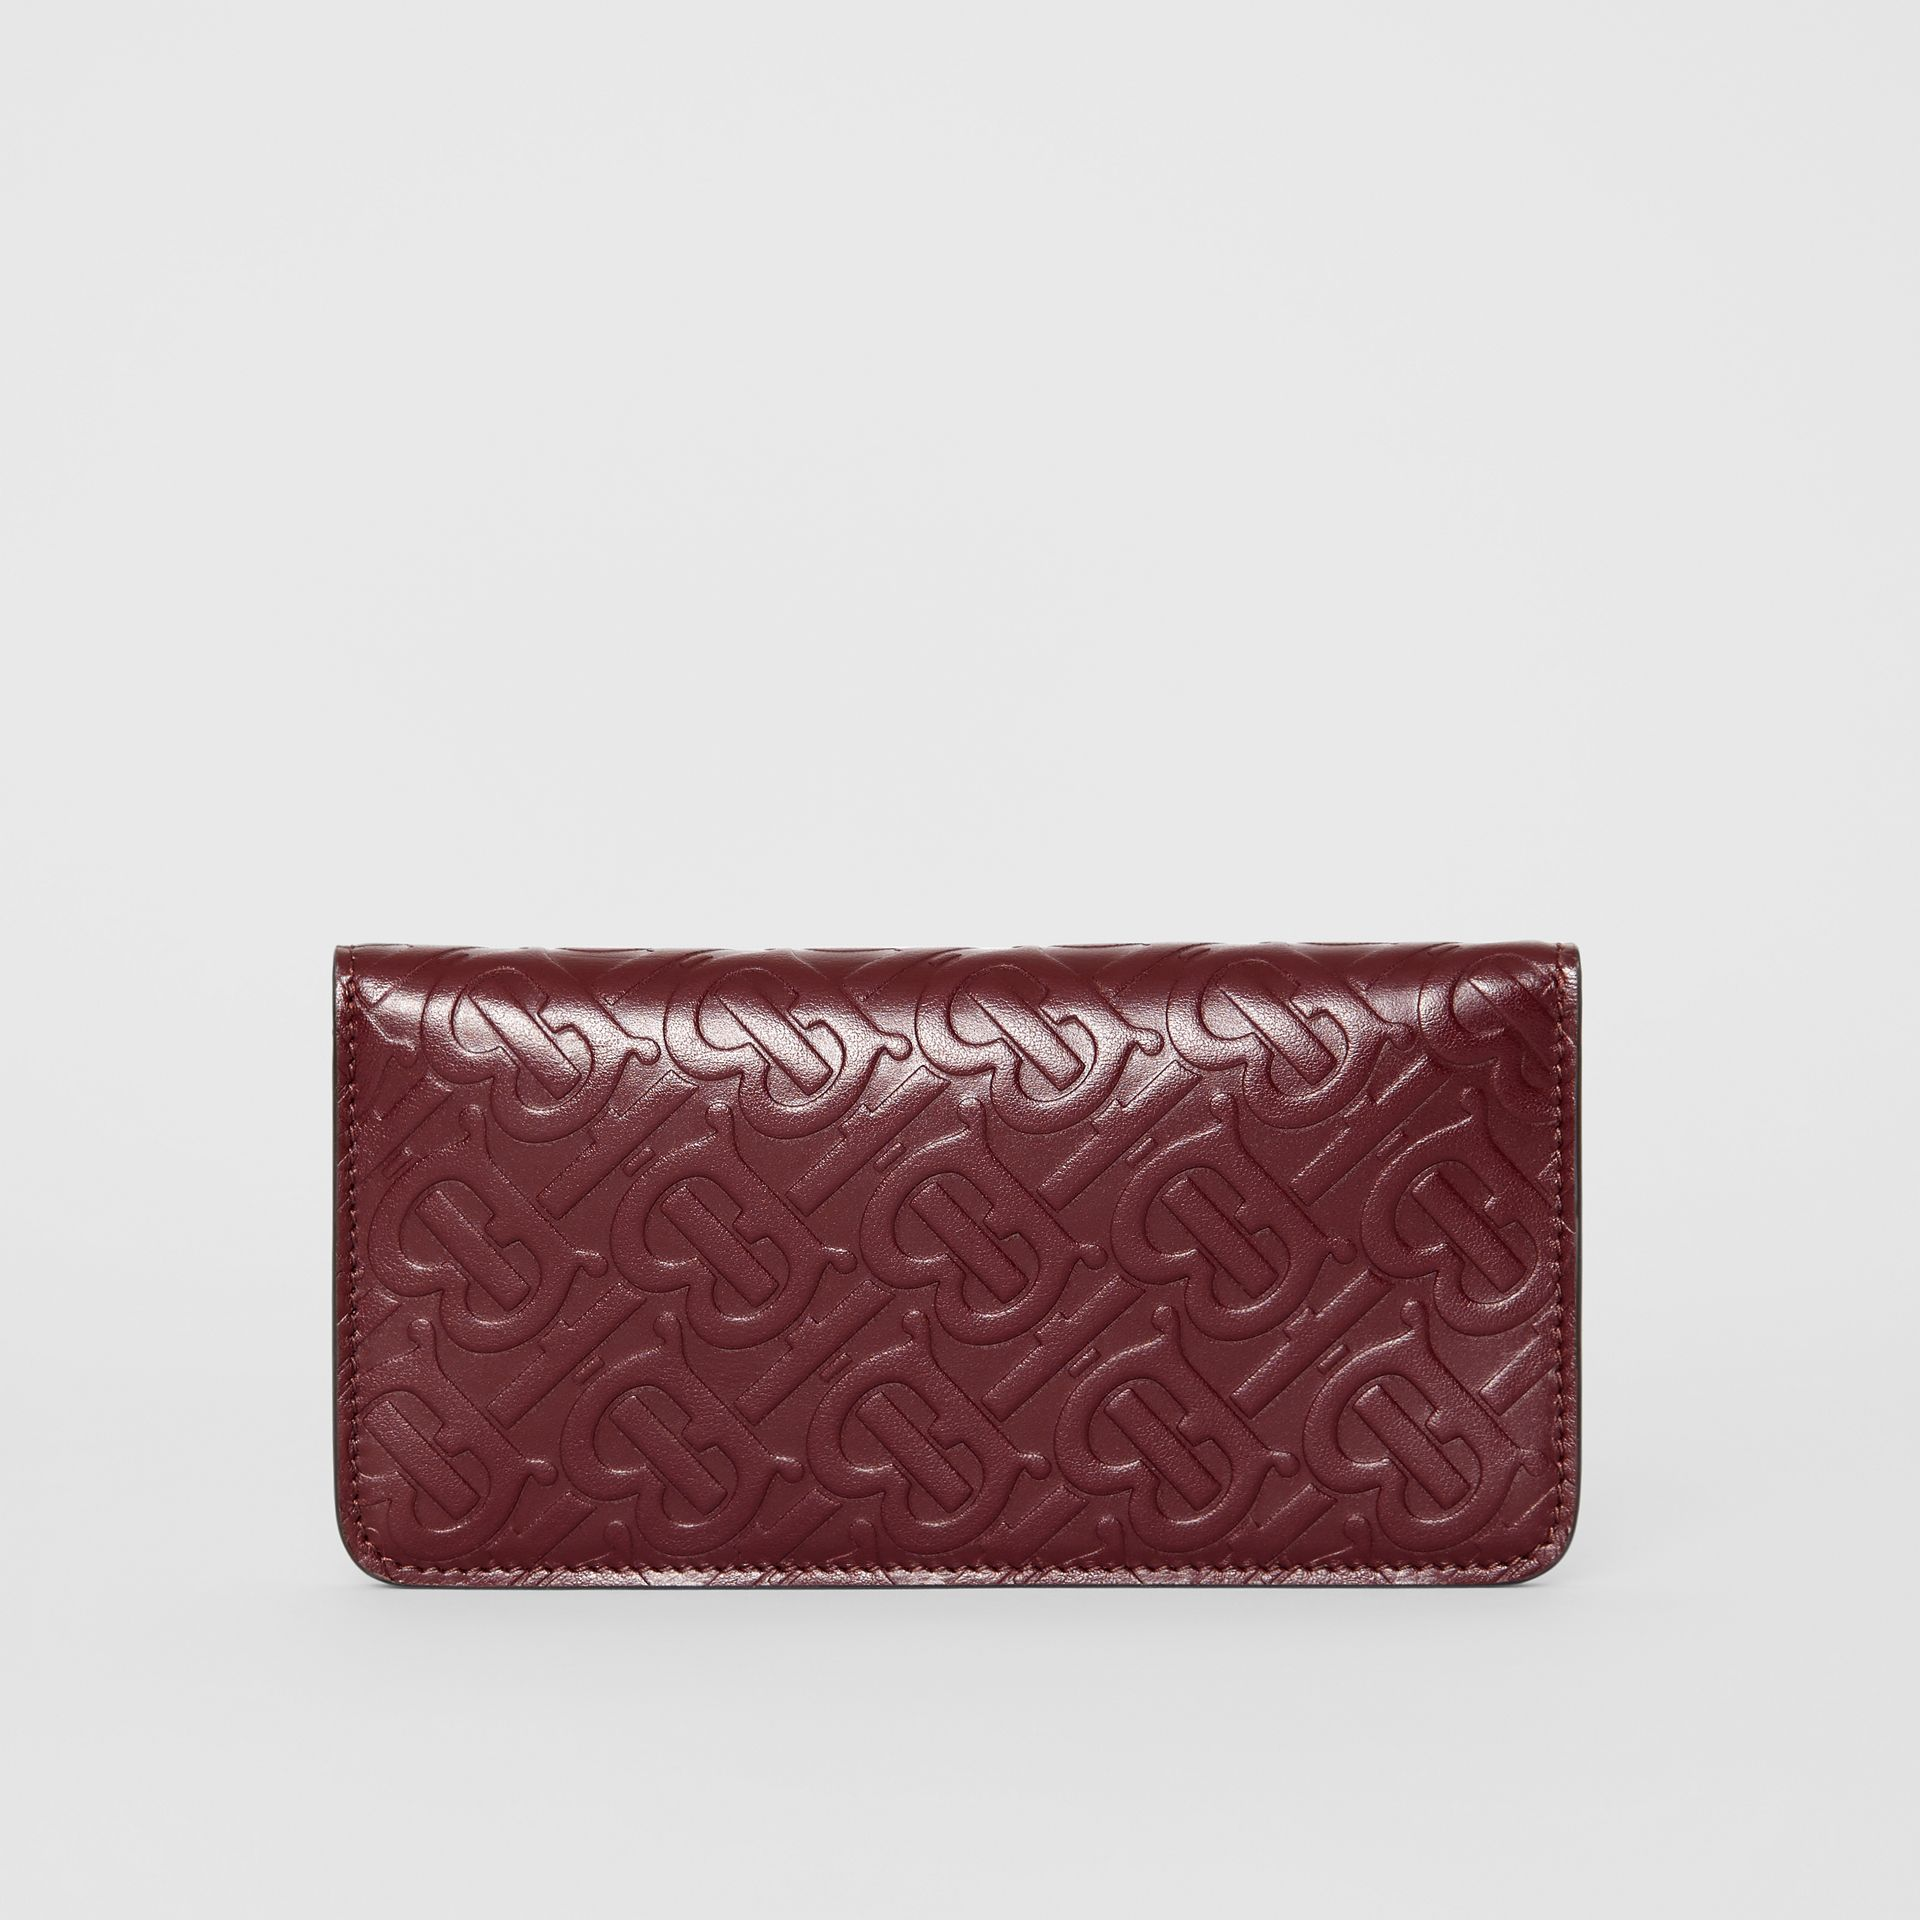 Monogram Leather Phone Wallet in Oxblood | Burberry - gallery image 5